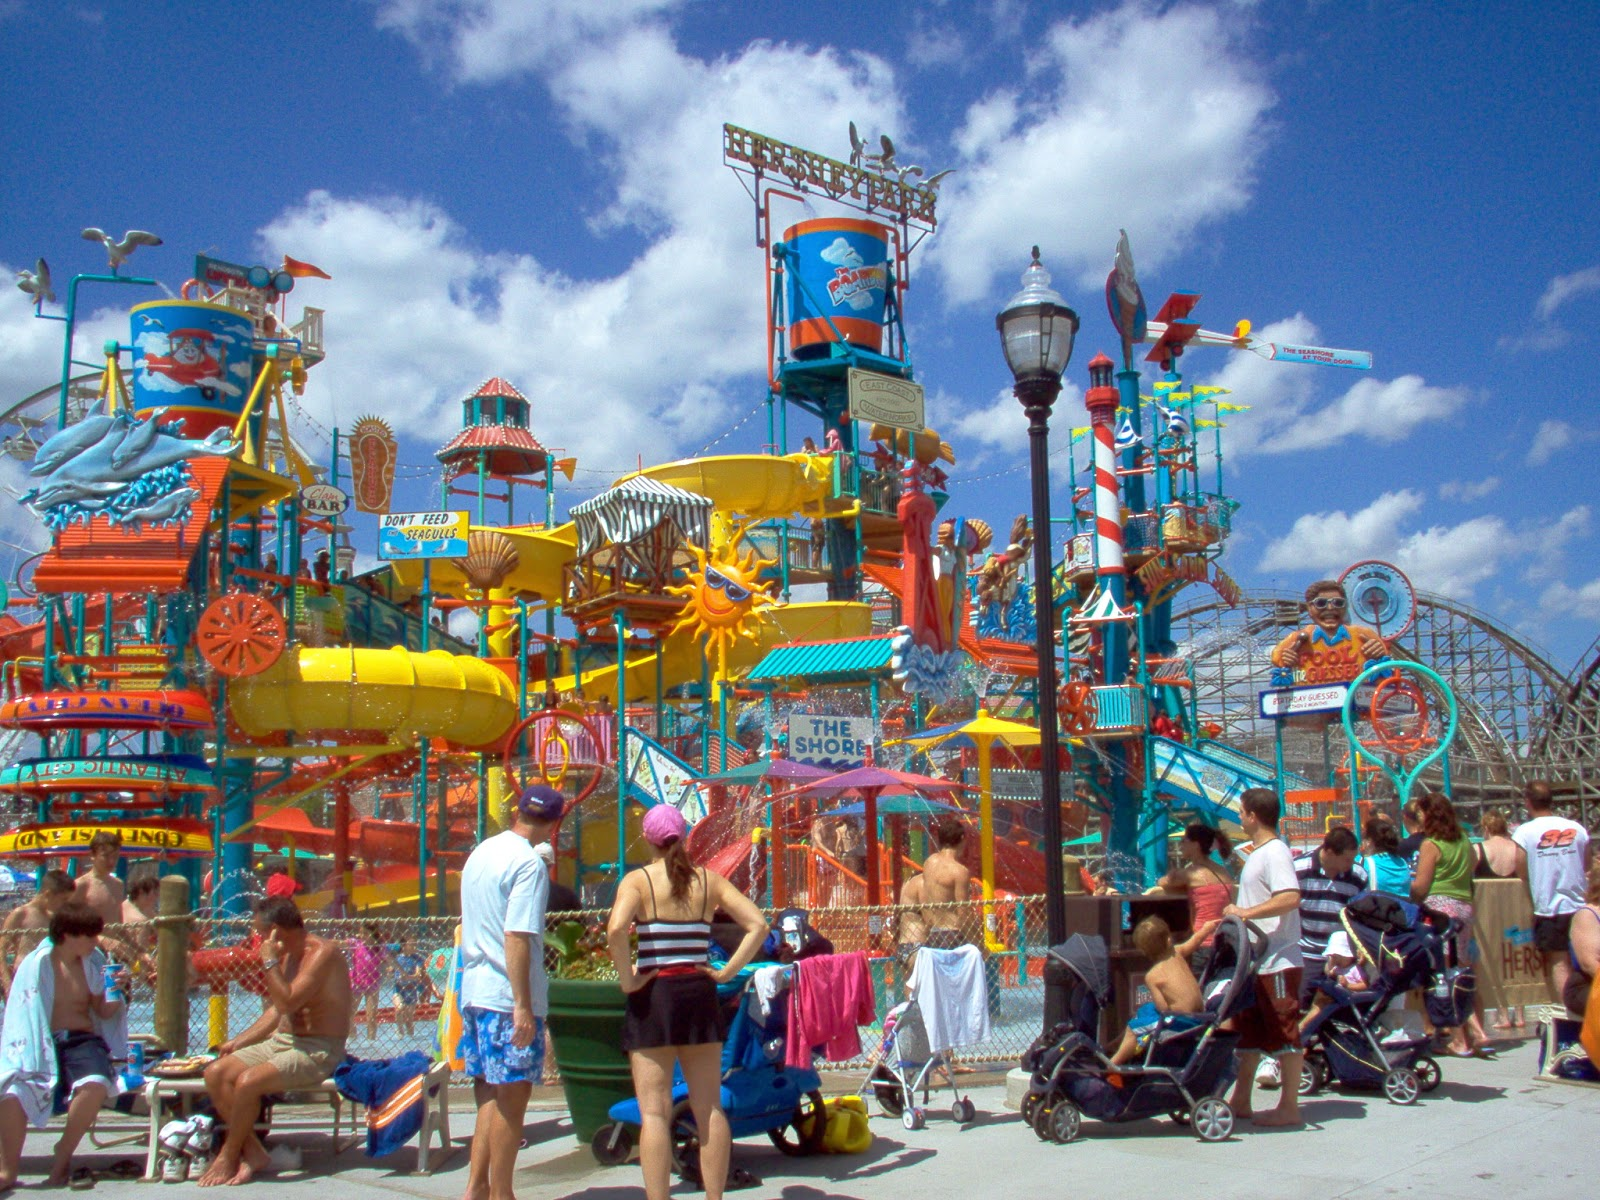 download-free-carlos.tk Gate Price: MRPA Selling Price: General Admission (2 & under and 65+) FREE: $ $ Year-round indoor water park; Outdoor water park (opens.